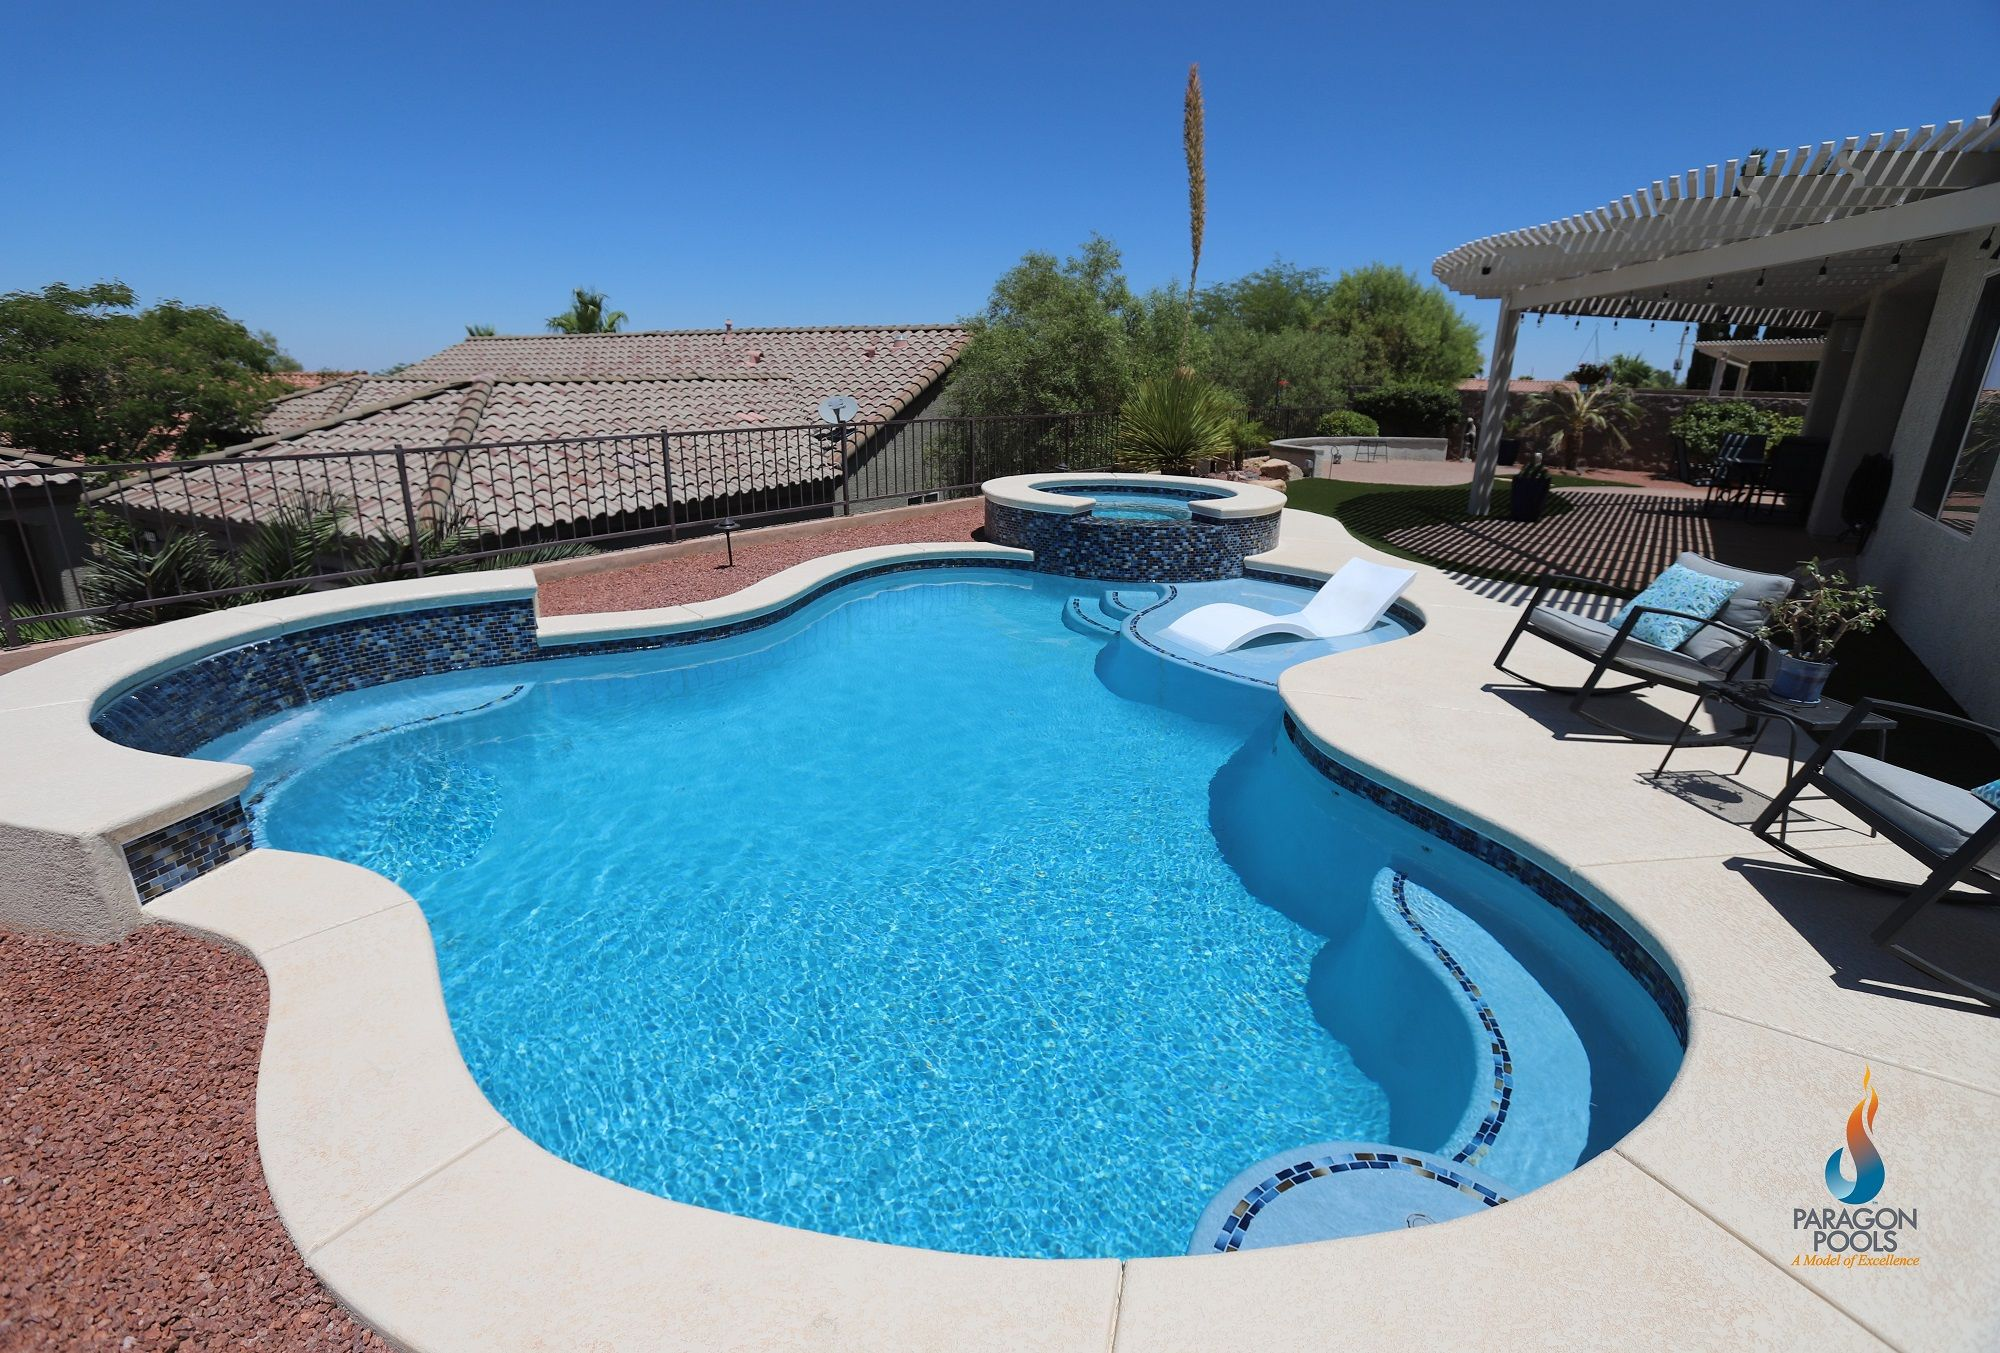 Brilliant Deck Over Pool Retirement With White Cantilever Patio Umbrella Also Swimming Pool Tanning Ledge With Tanning Ledge Lounge Chairs Treillis